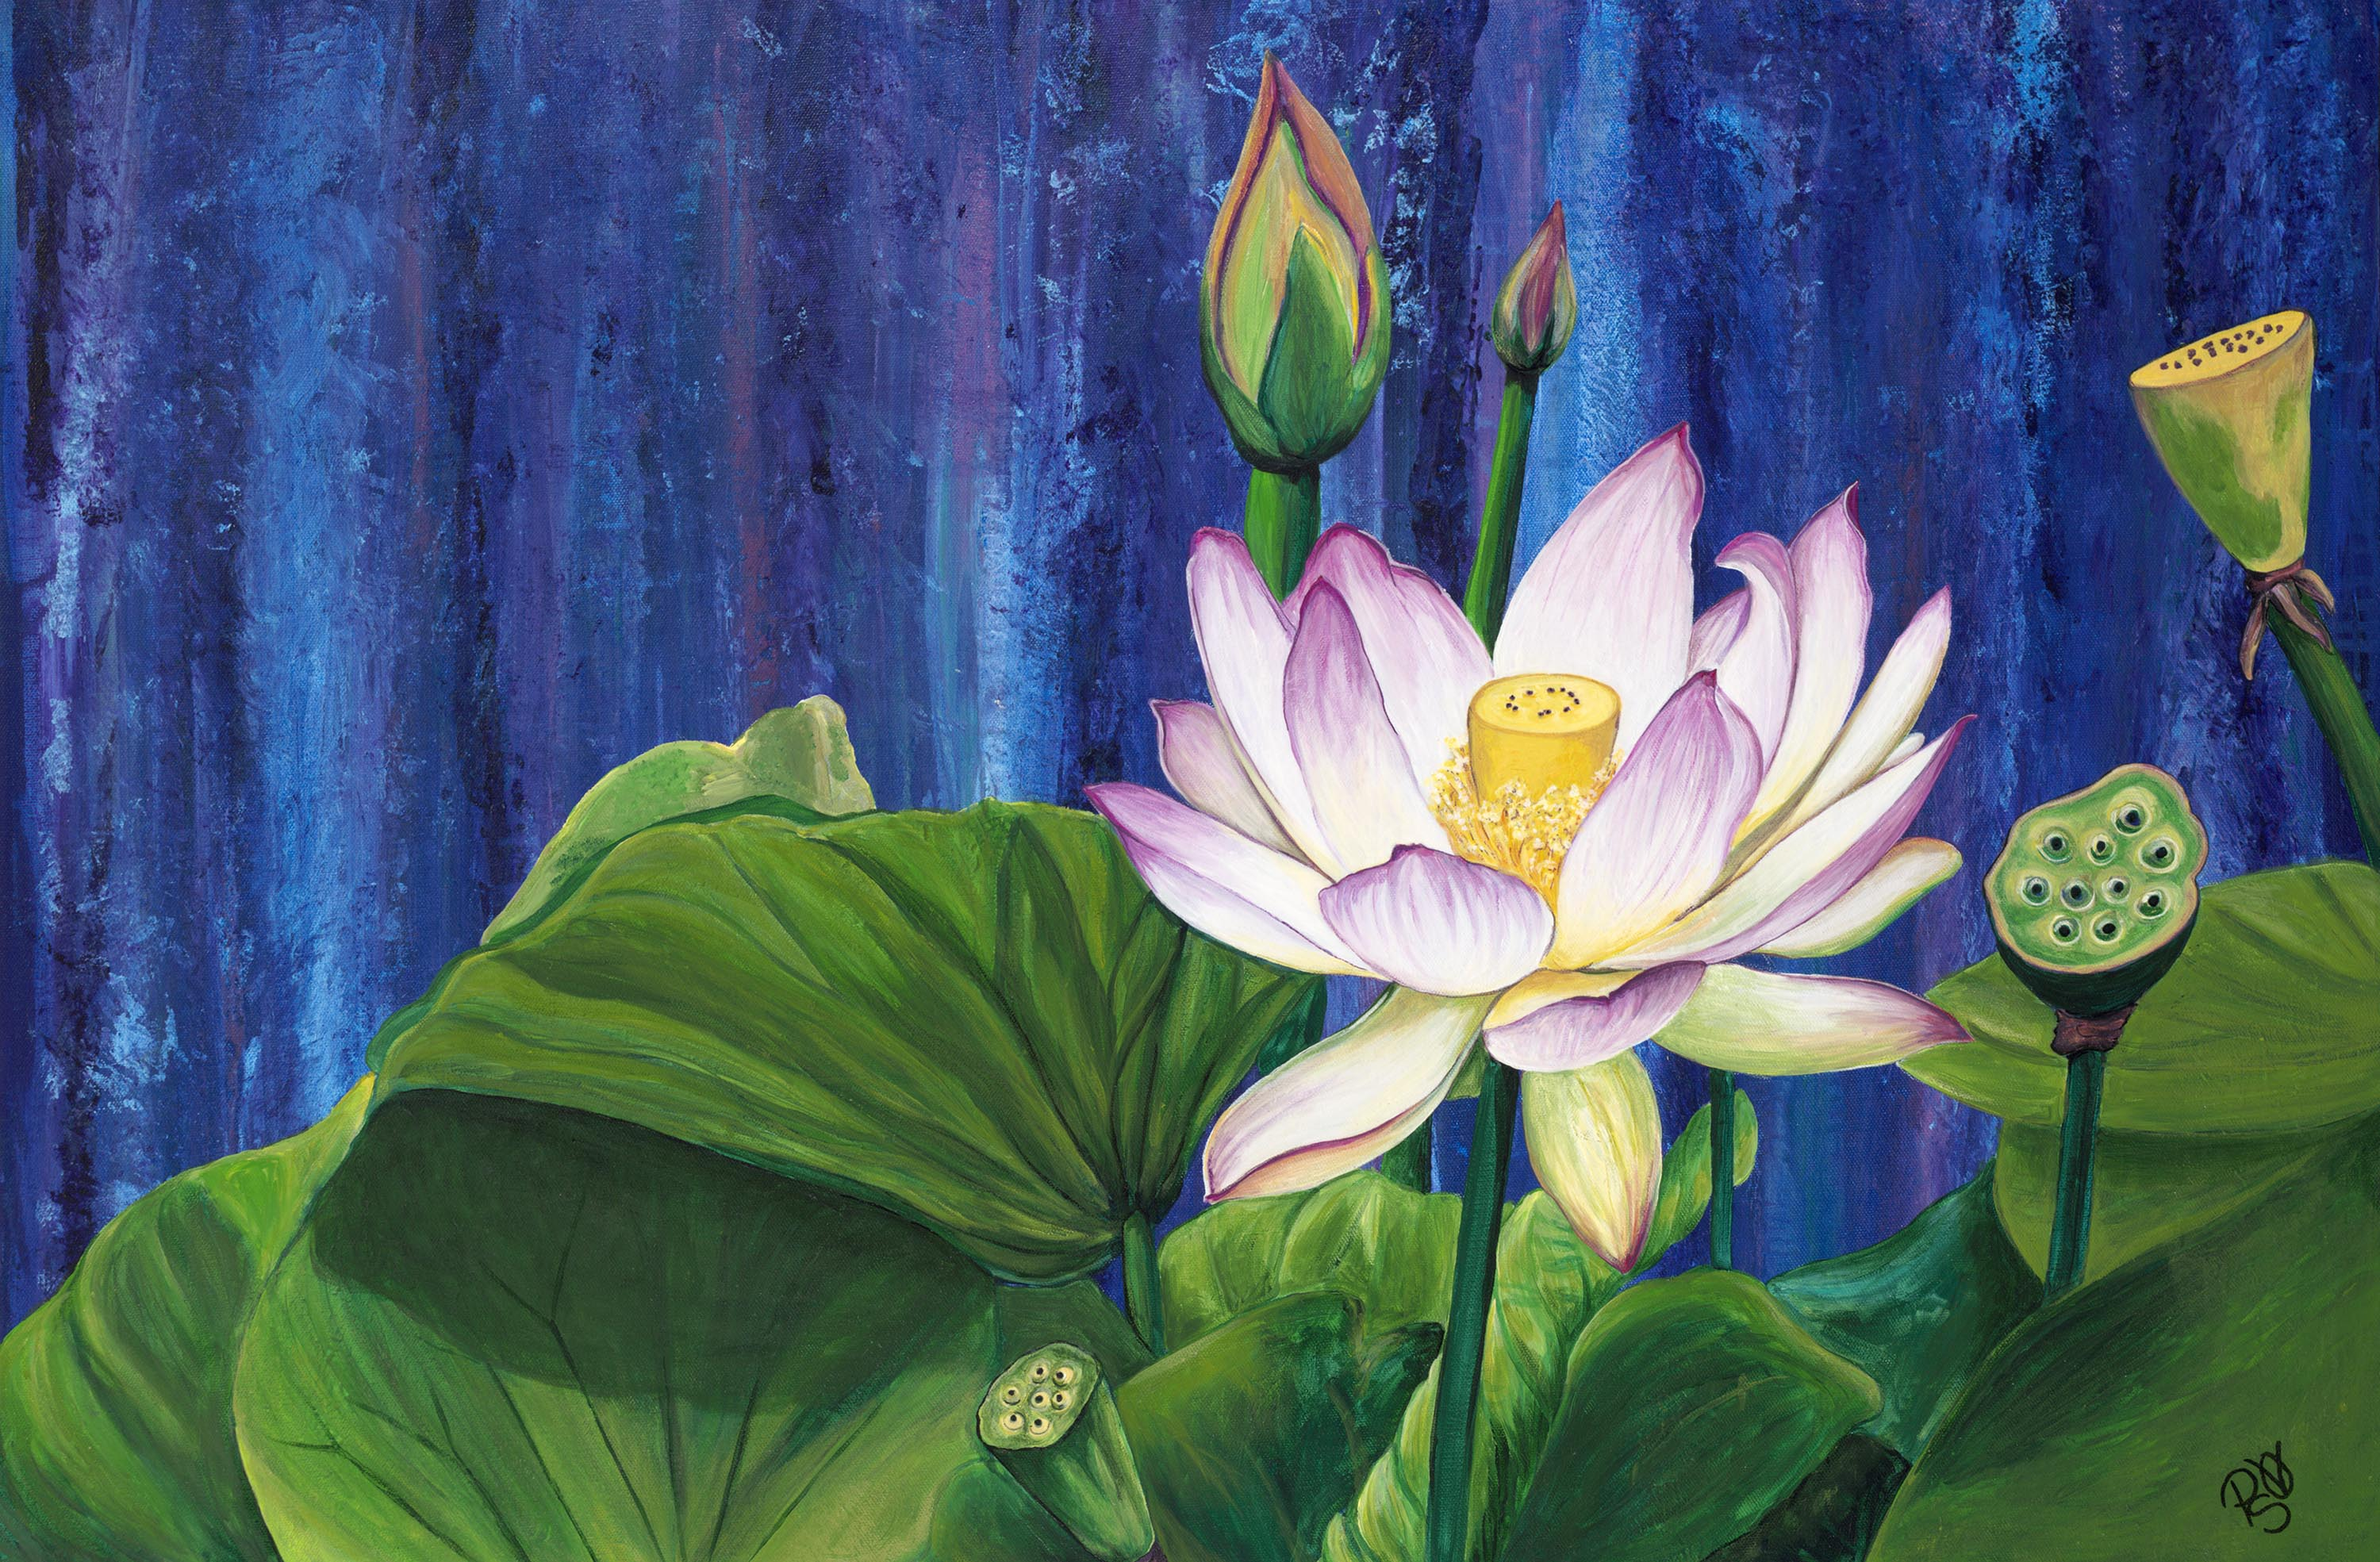 Pattys vicknairs flower paintings the art of patty sue ohair lotus dream by patty sue ohair vicknair 24 x 36 x 15 acrylic izmirmasajfo